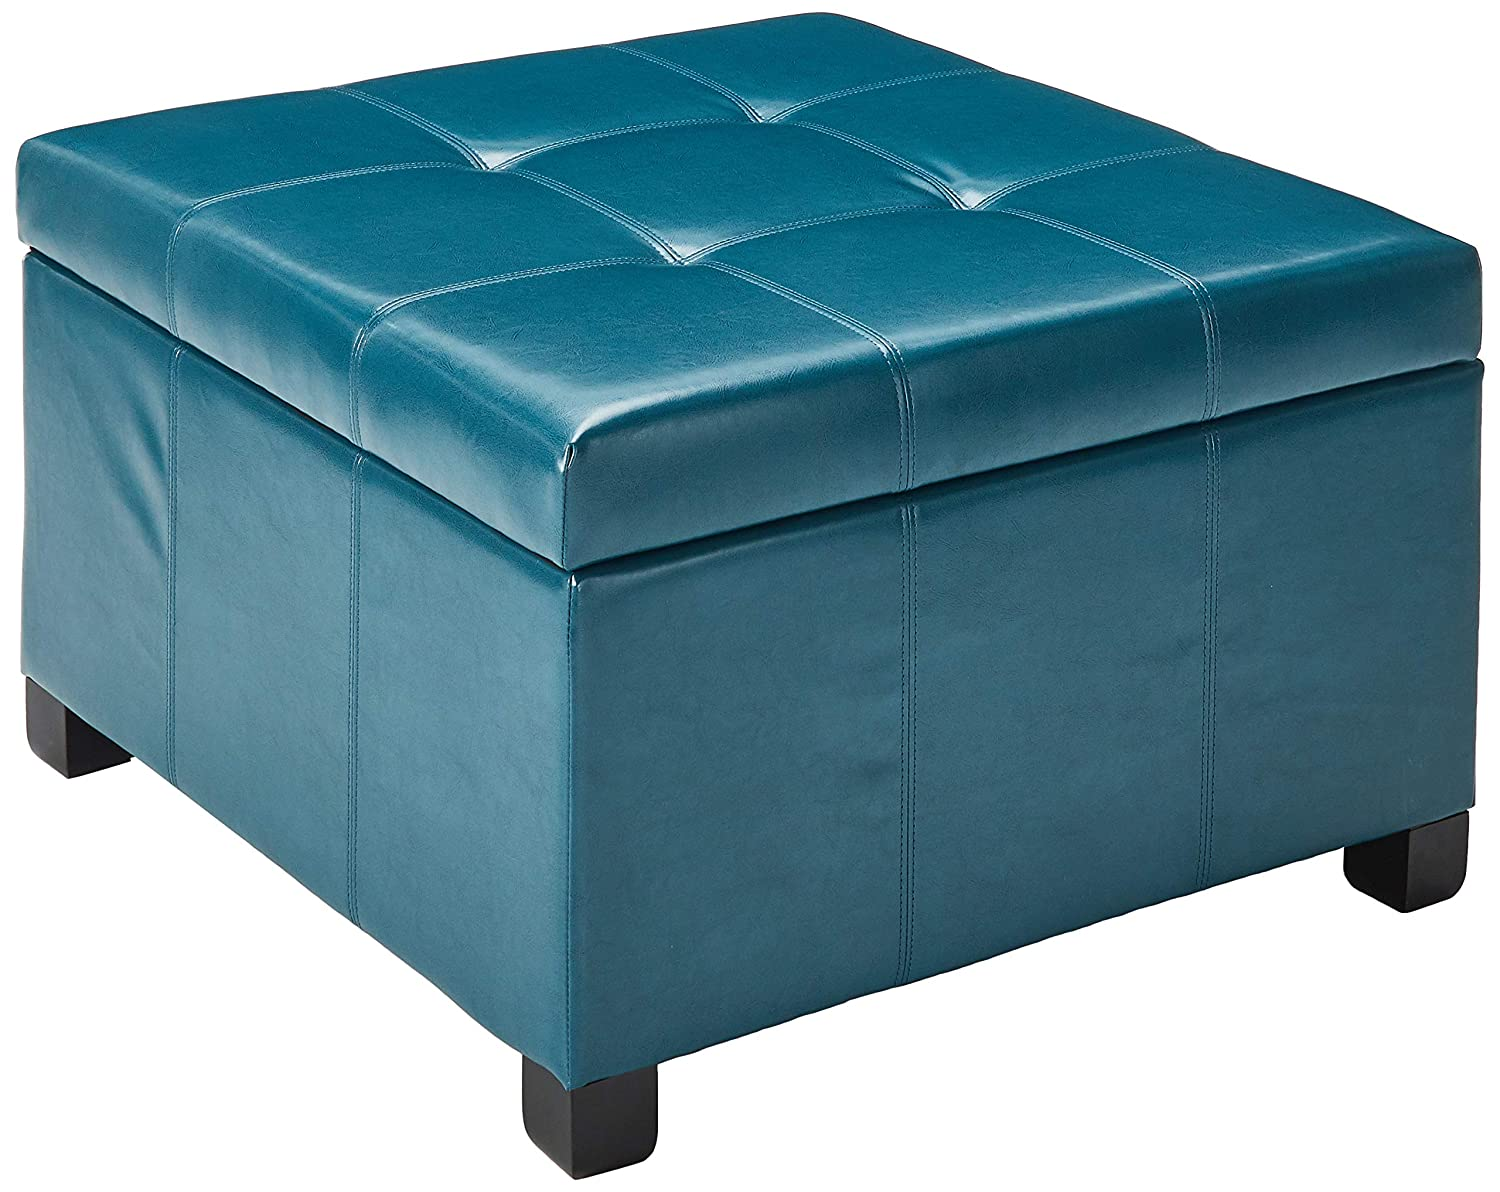 Teal Storage Ottoman Home Design